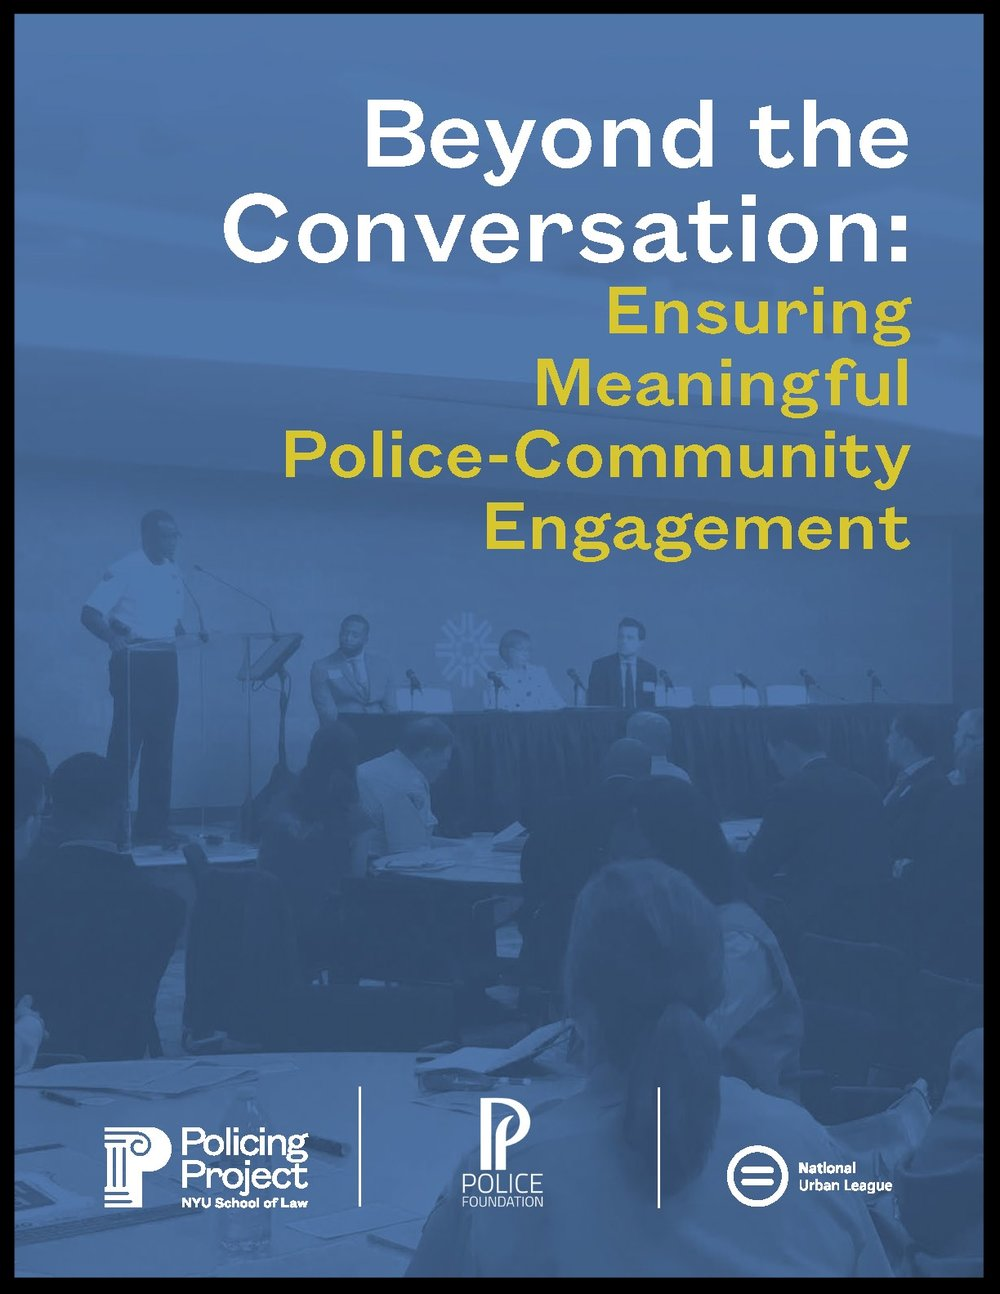 Pages from Policing Project_Beyond the Conversation.jpg